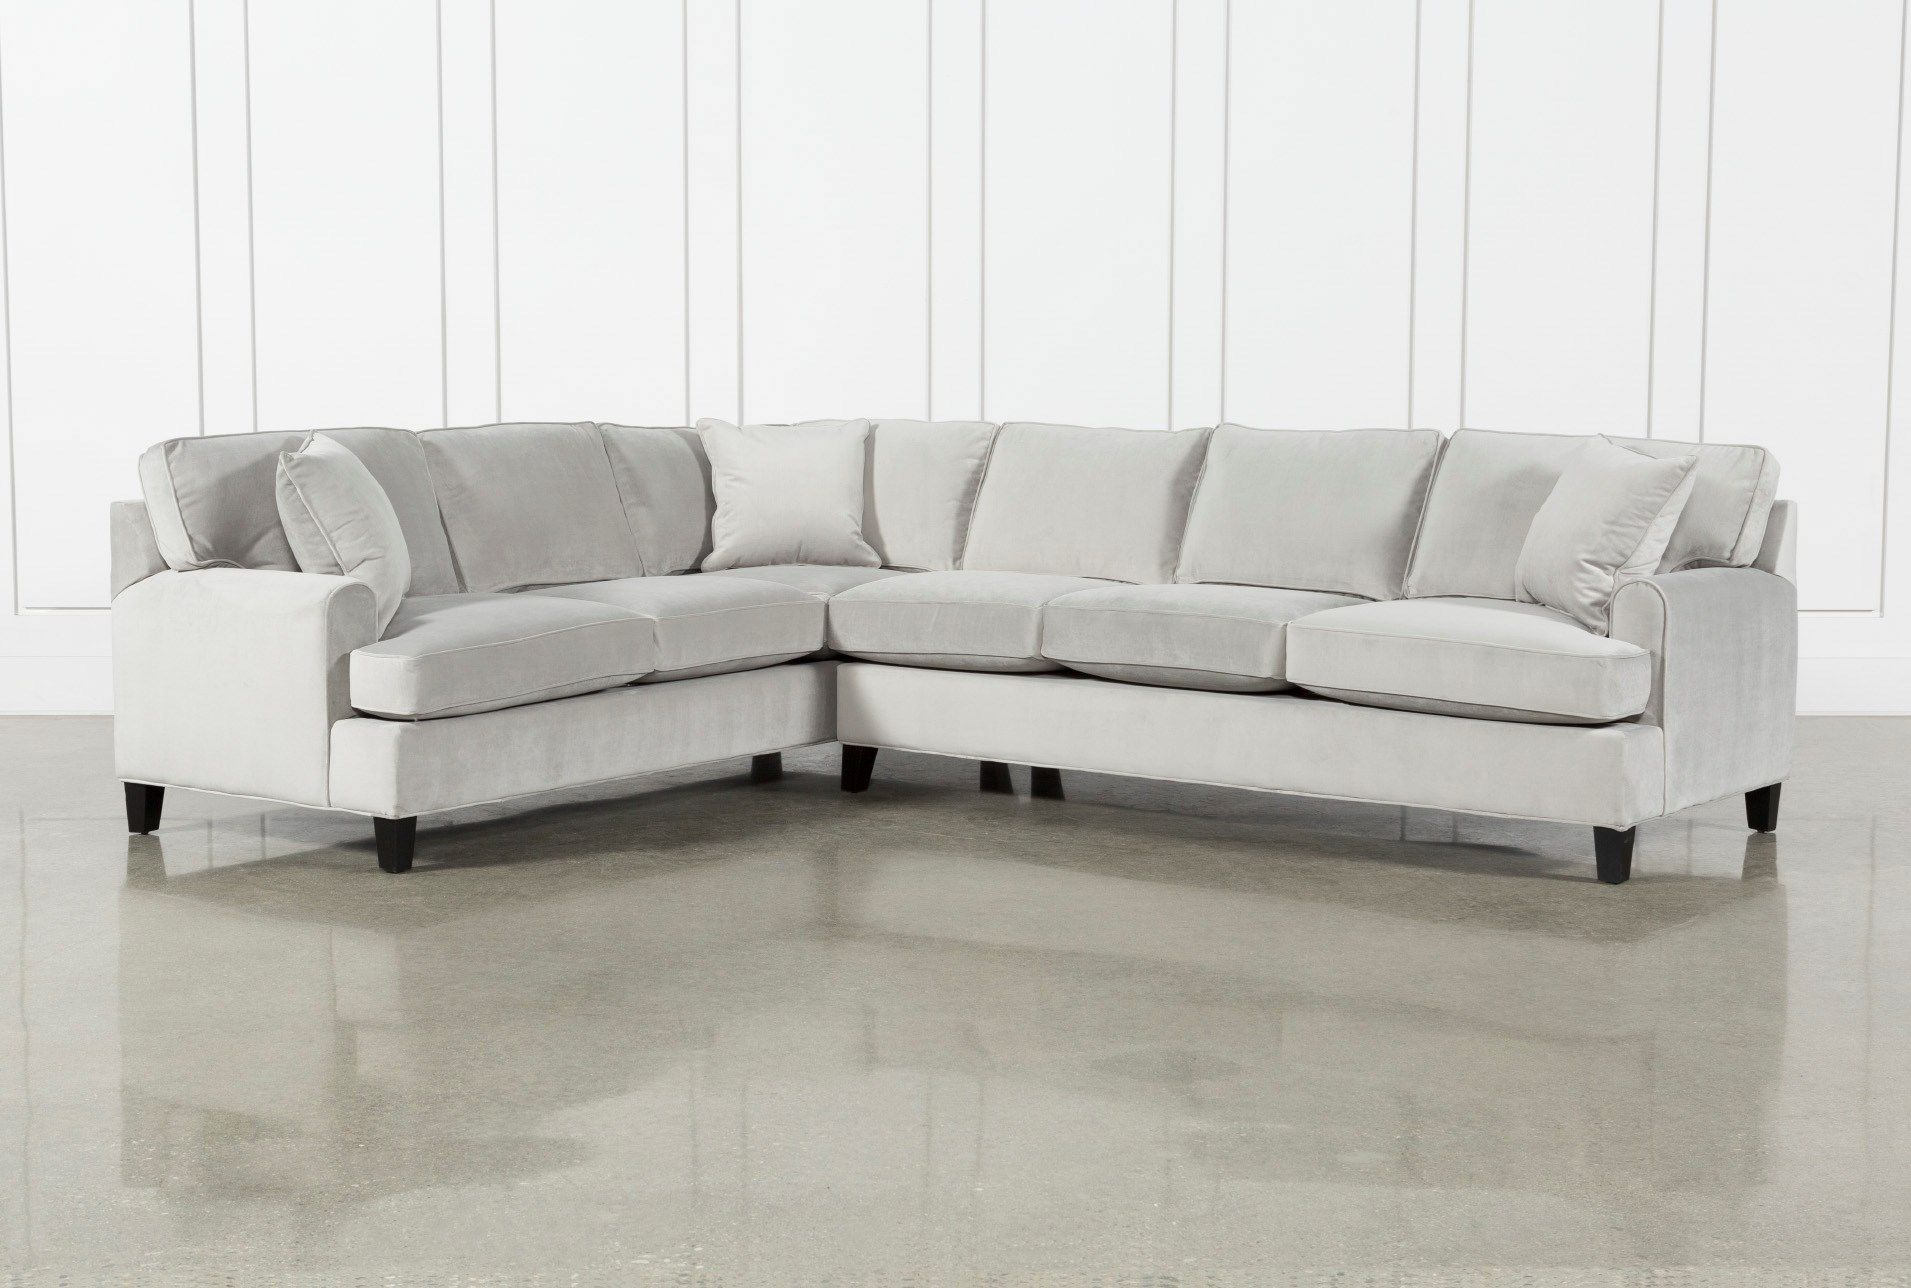 Donaver Ii 2 Piece Sectional With Right Arm Facing Sofa Sectional Sofa 2 Piece Sectional Sofa Reclining Sectional